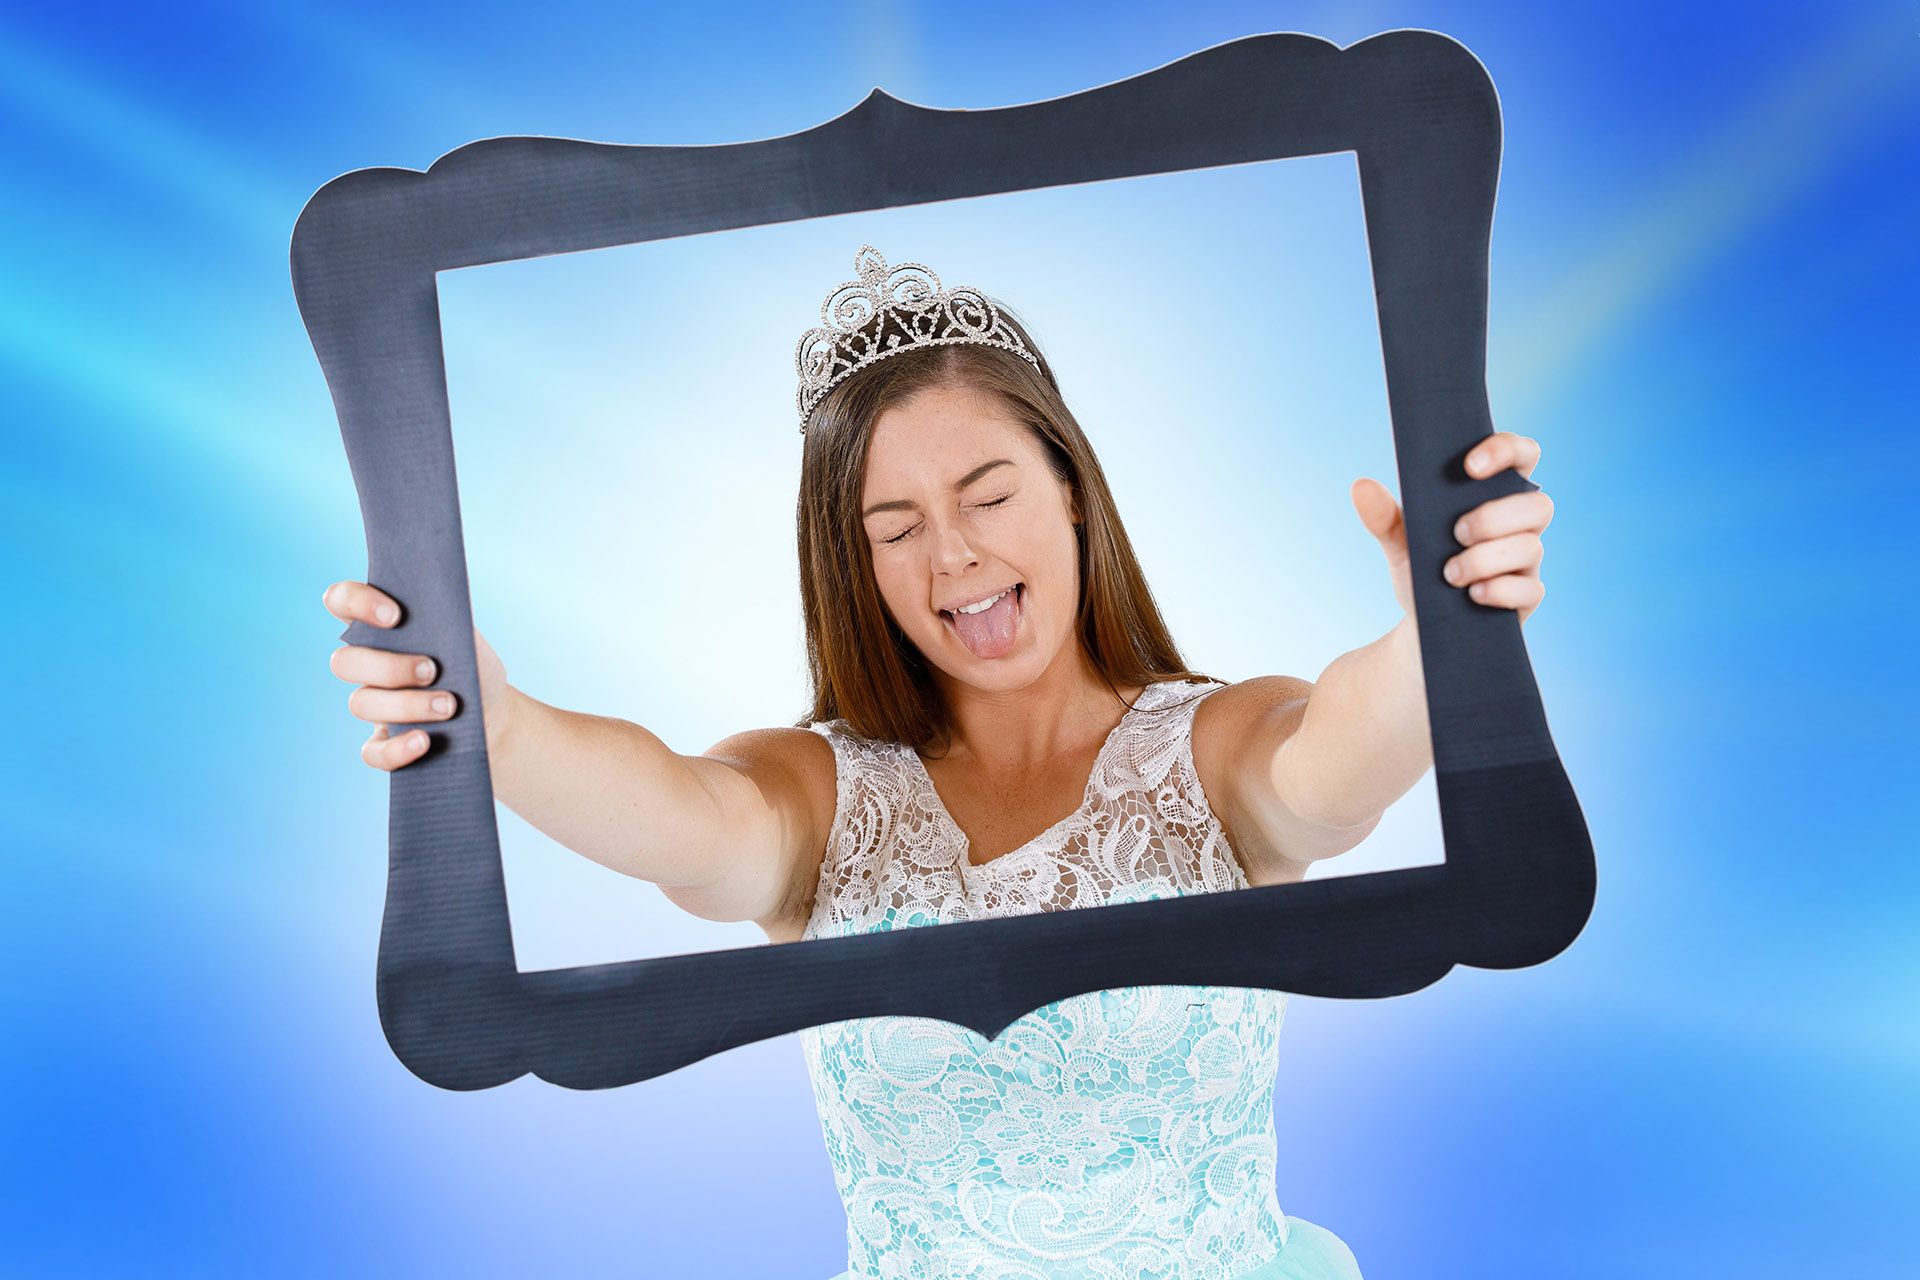 get-glitzd-sparkle-glitter-day-spa-pamper-the-party-girl-world-kids-children-s-birthday-parties-face-painting-events-shopping-centre-activations-workshops-games-balloon-scultping-entertainer-entertainment-perth-canberra-melbourne-geelong-surfcoast-brisbane-gold-coast-nsw-vic-qld-wa-act-australia